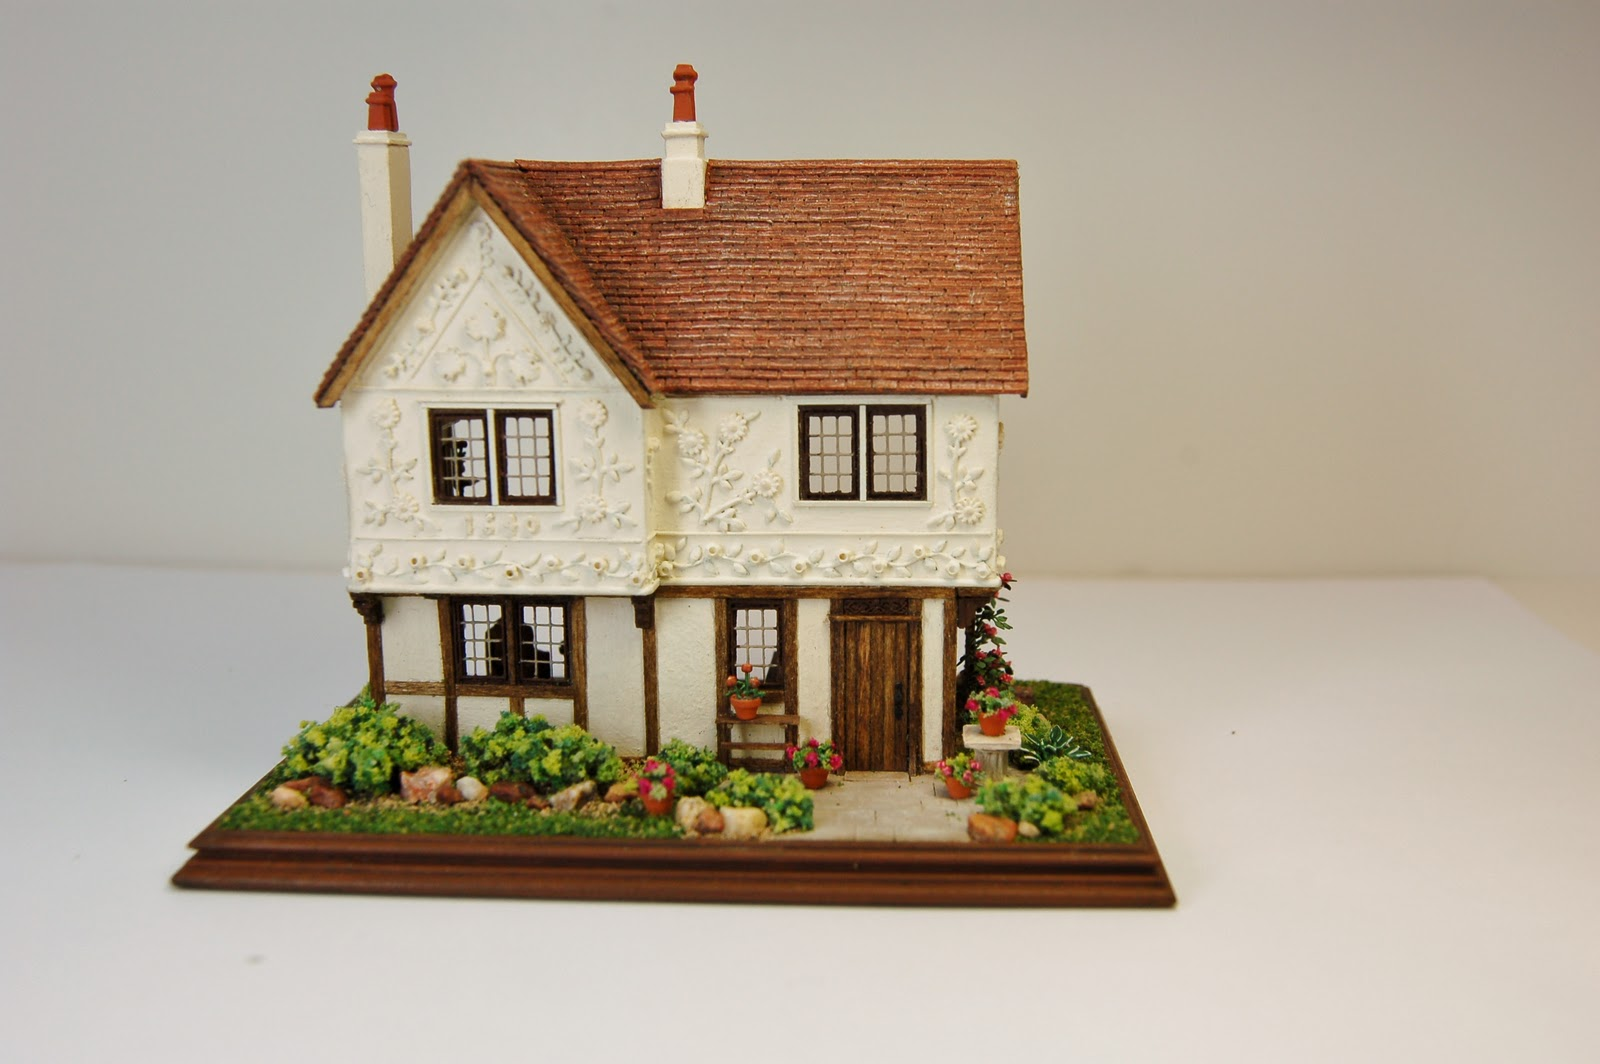 Fantastic Miniature Miniatures Nell Corkin A Pargeted House Largest Home Design Picture Inspirations Pitcheantrous